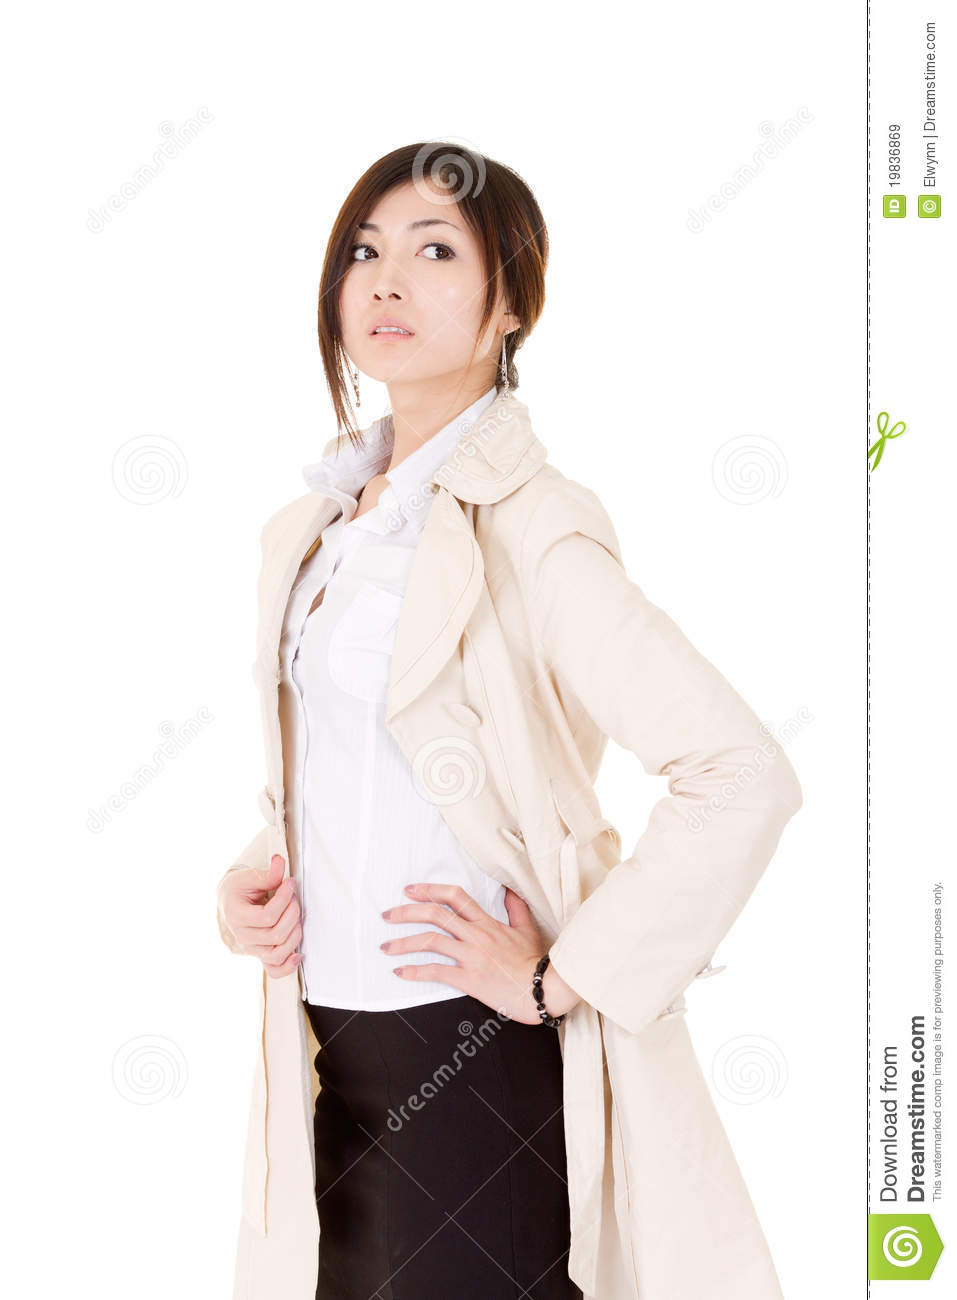 Successful Business Woman Royalty Free Stock Images ...